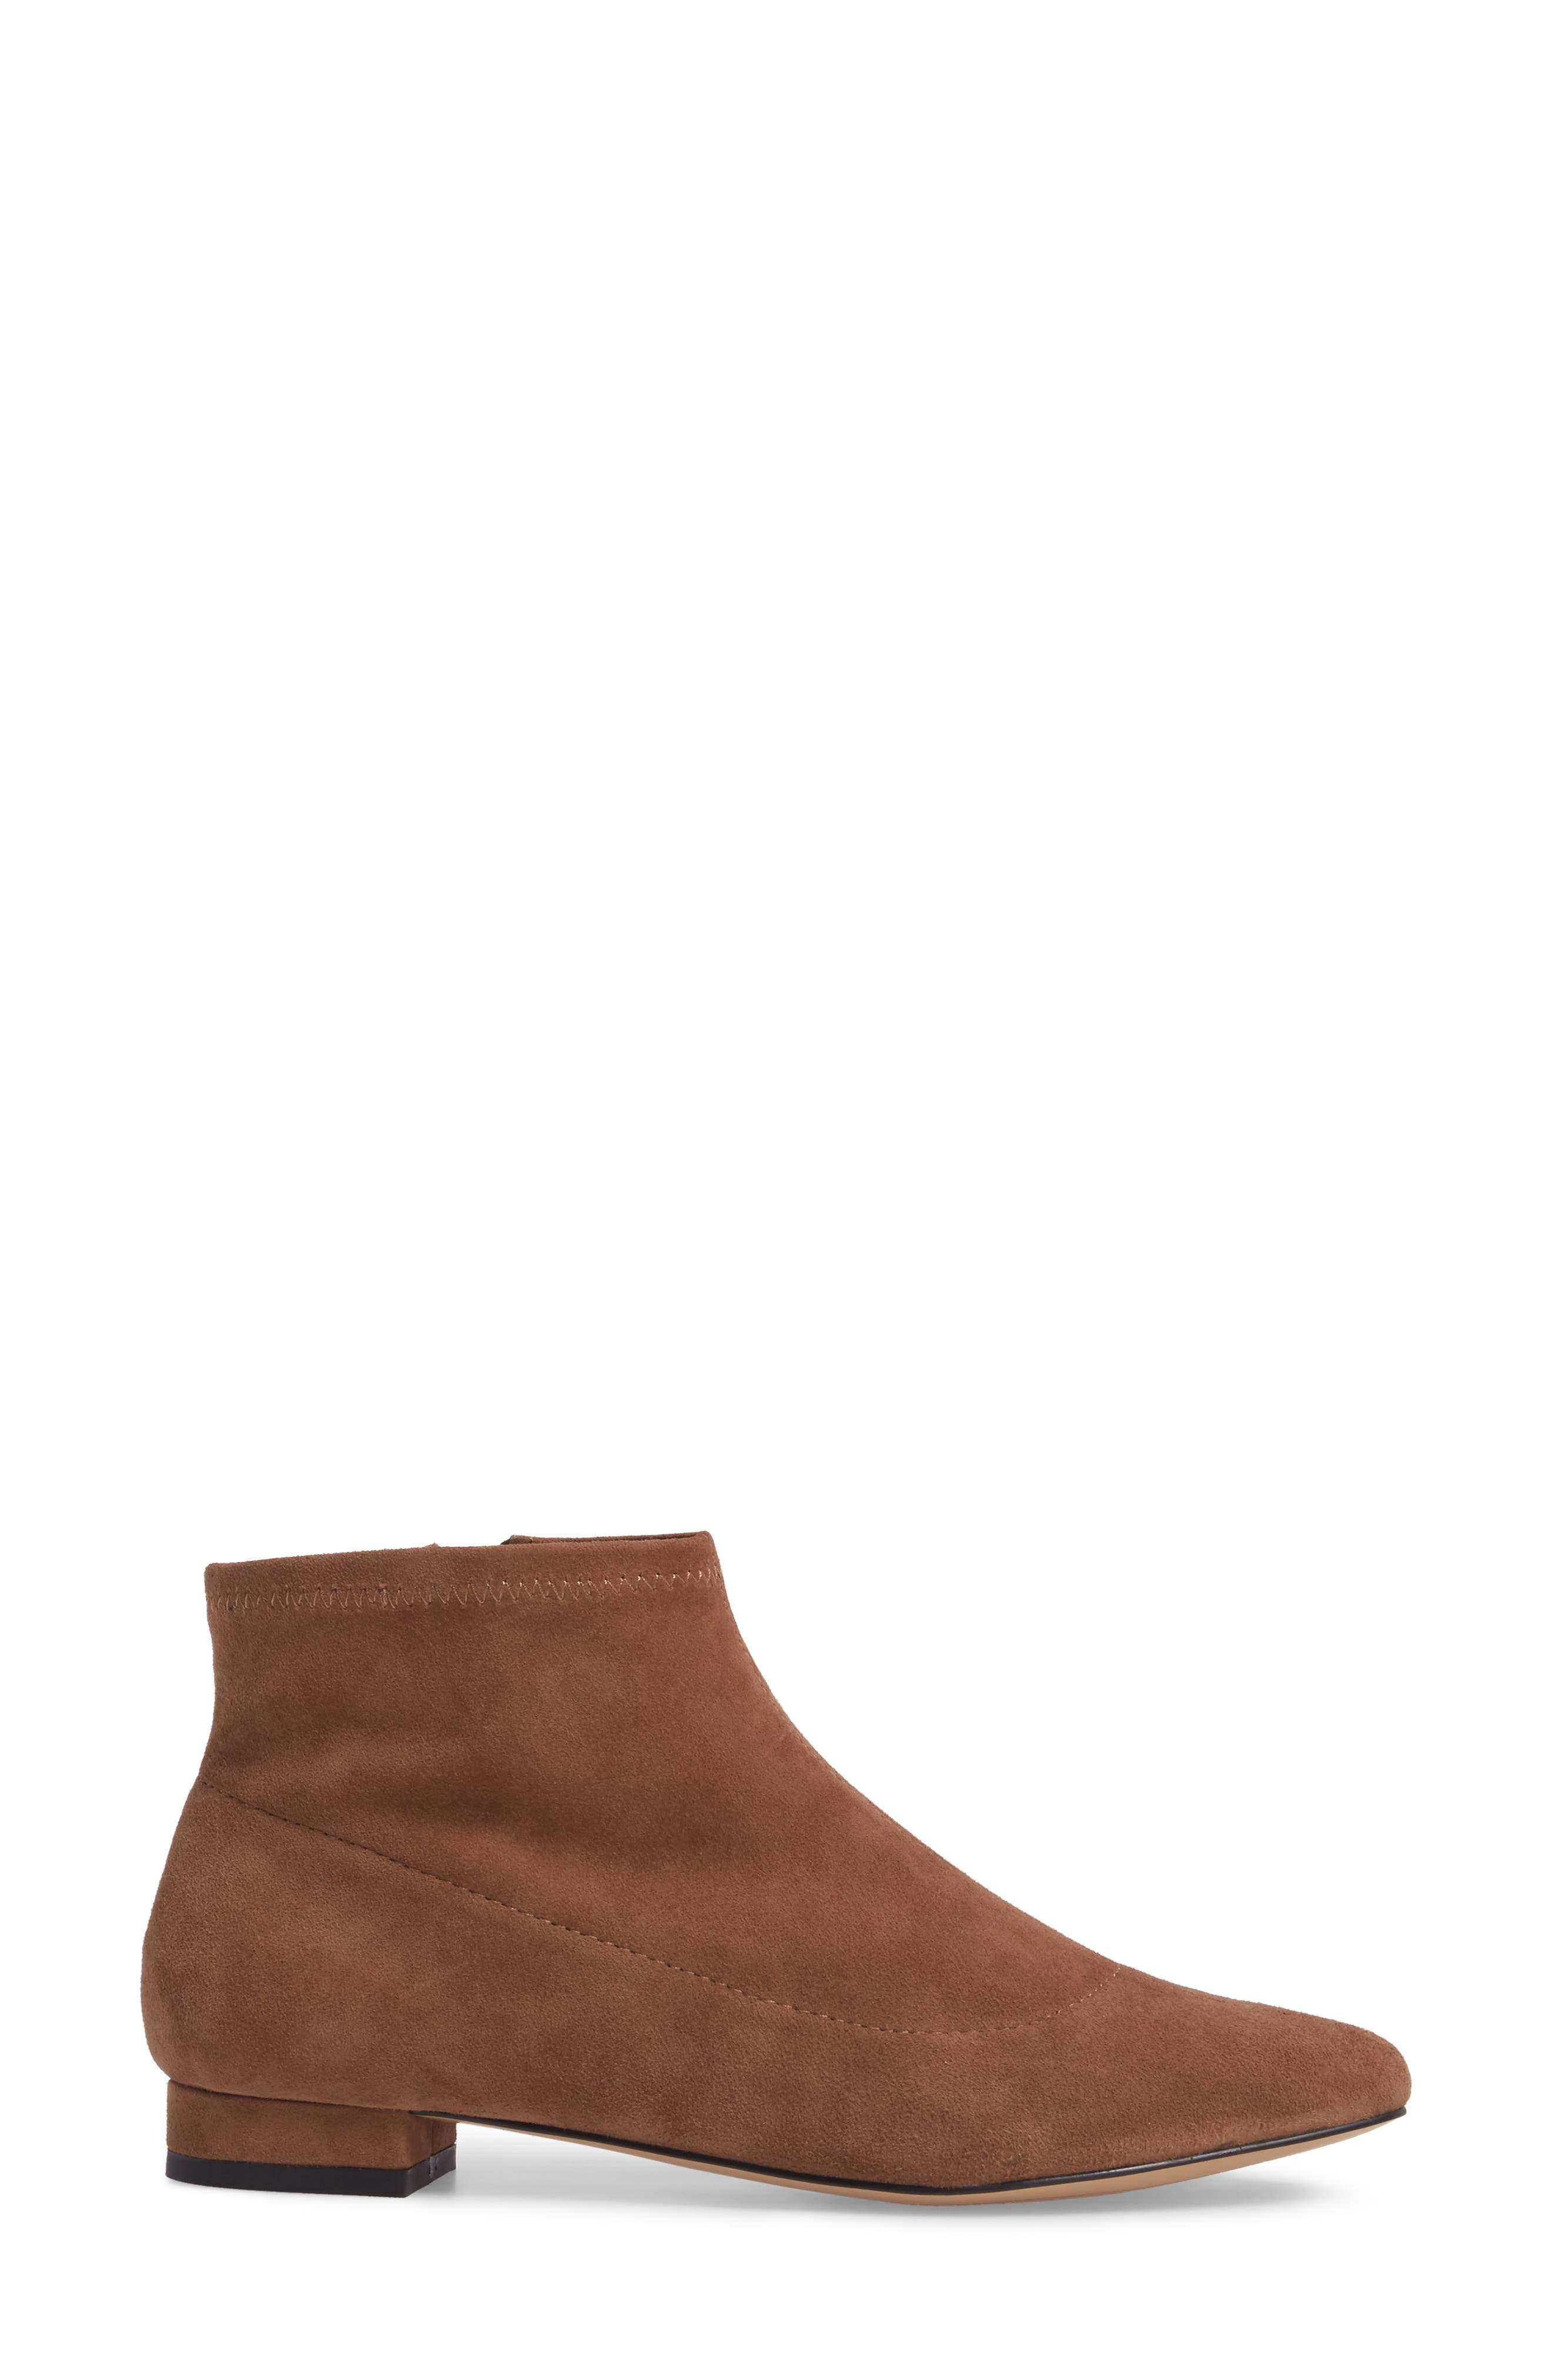 SUDINI, Aletta Bootie, Alternate thumbnail 3, color, TOBACCO SUEDE